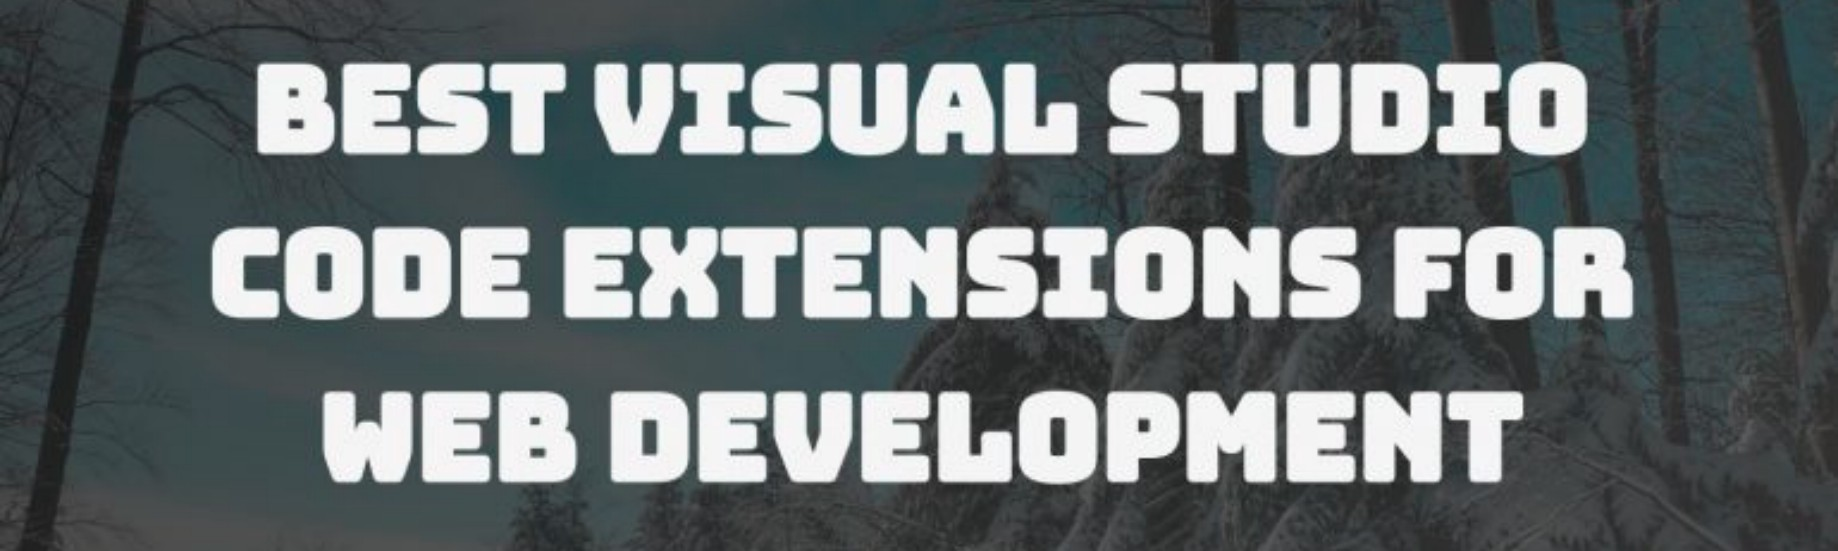 15 Best Visual Studio Code Extensions For Web Development – Codeforgeek